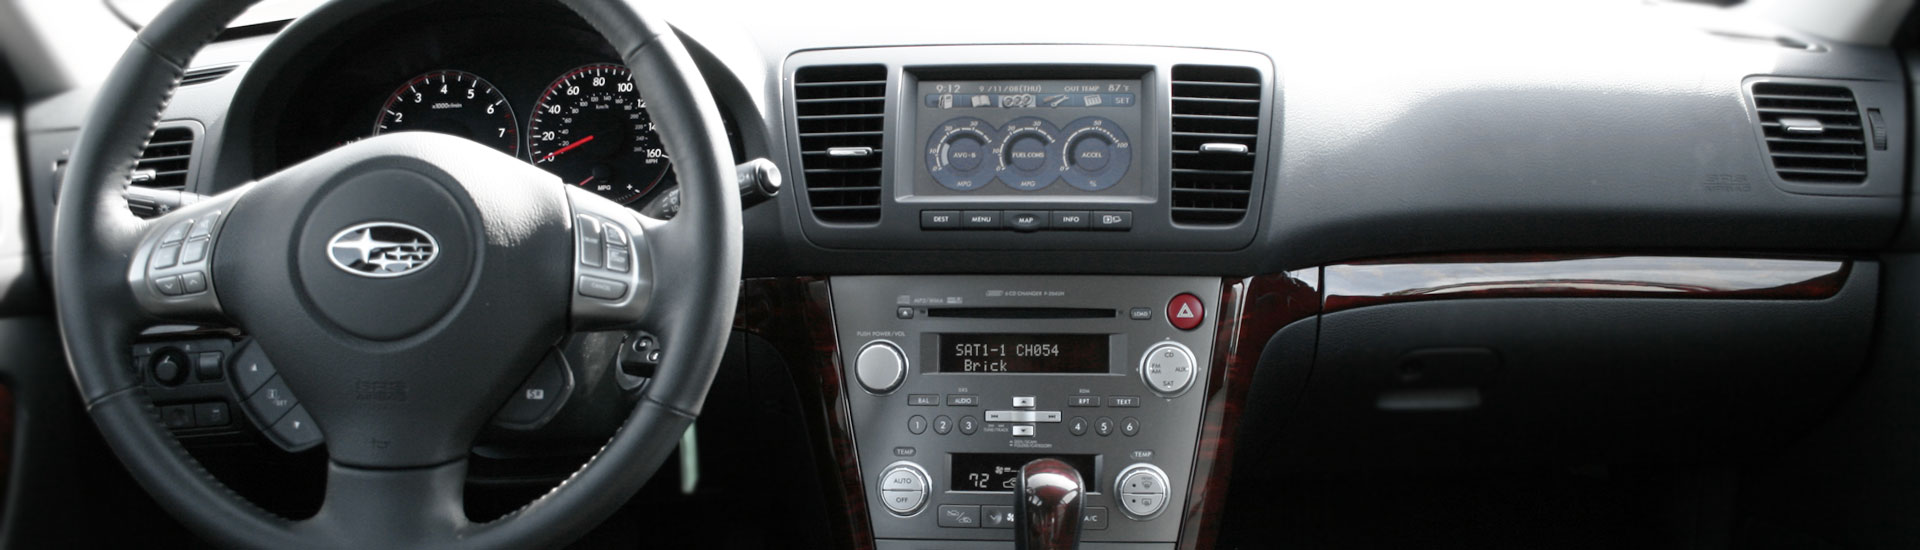 Subaru Tribeca Custom Dash Kits